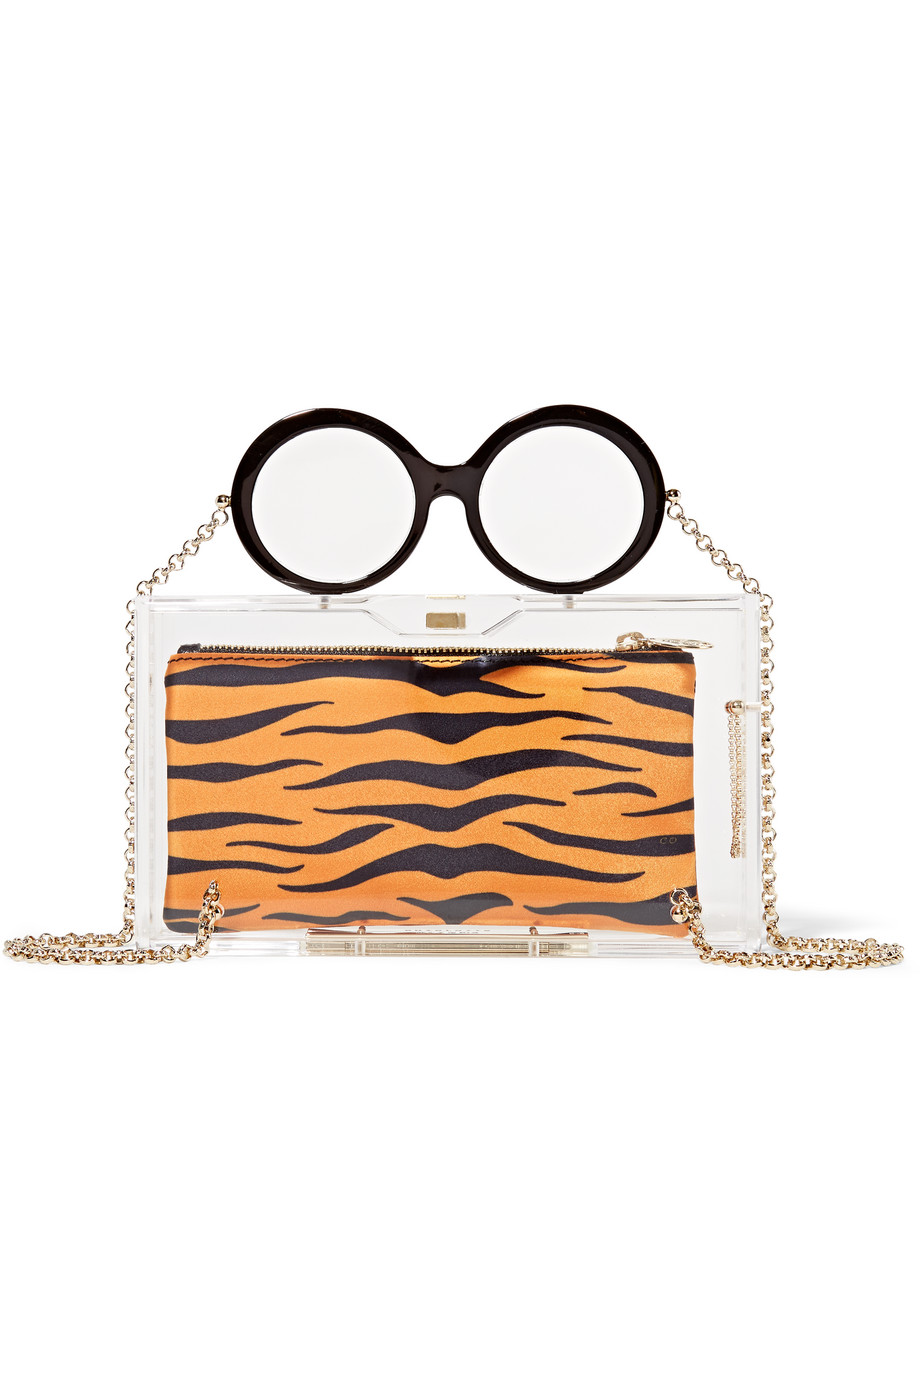 Charlotte Olympia Apfel Perspex Clutch, Clear/Leopard Print, Women's